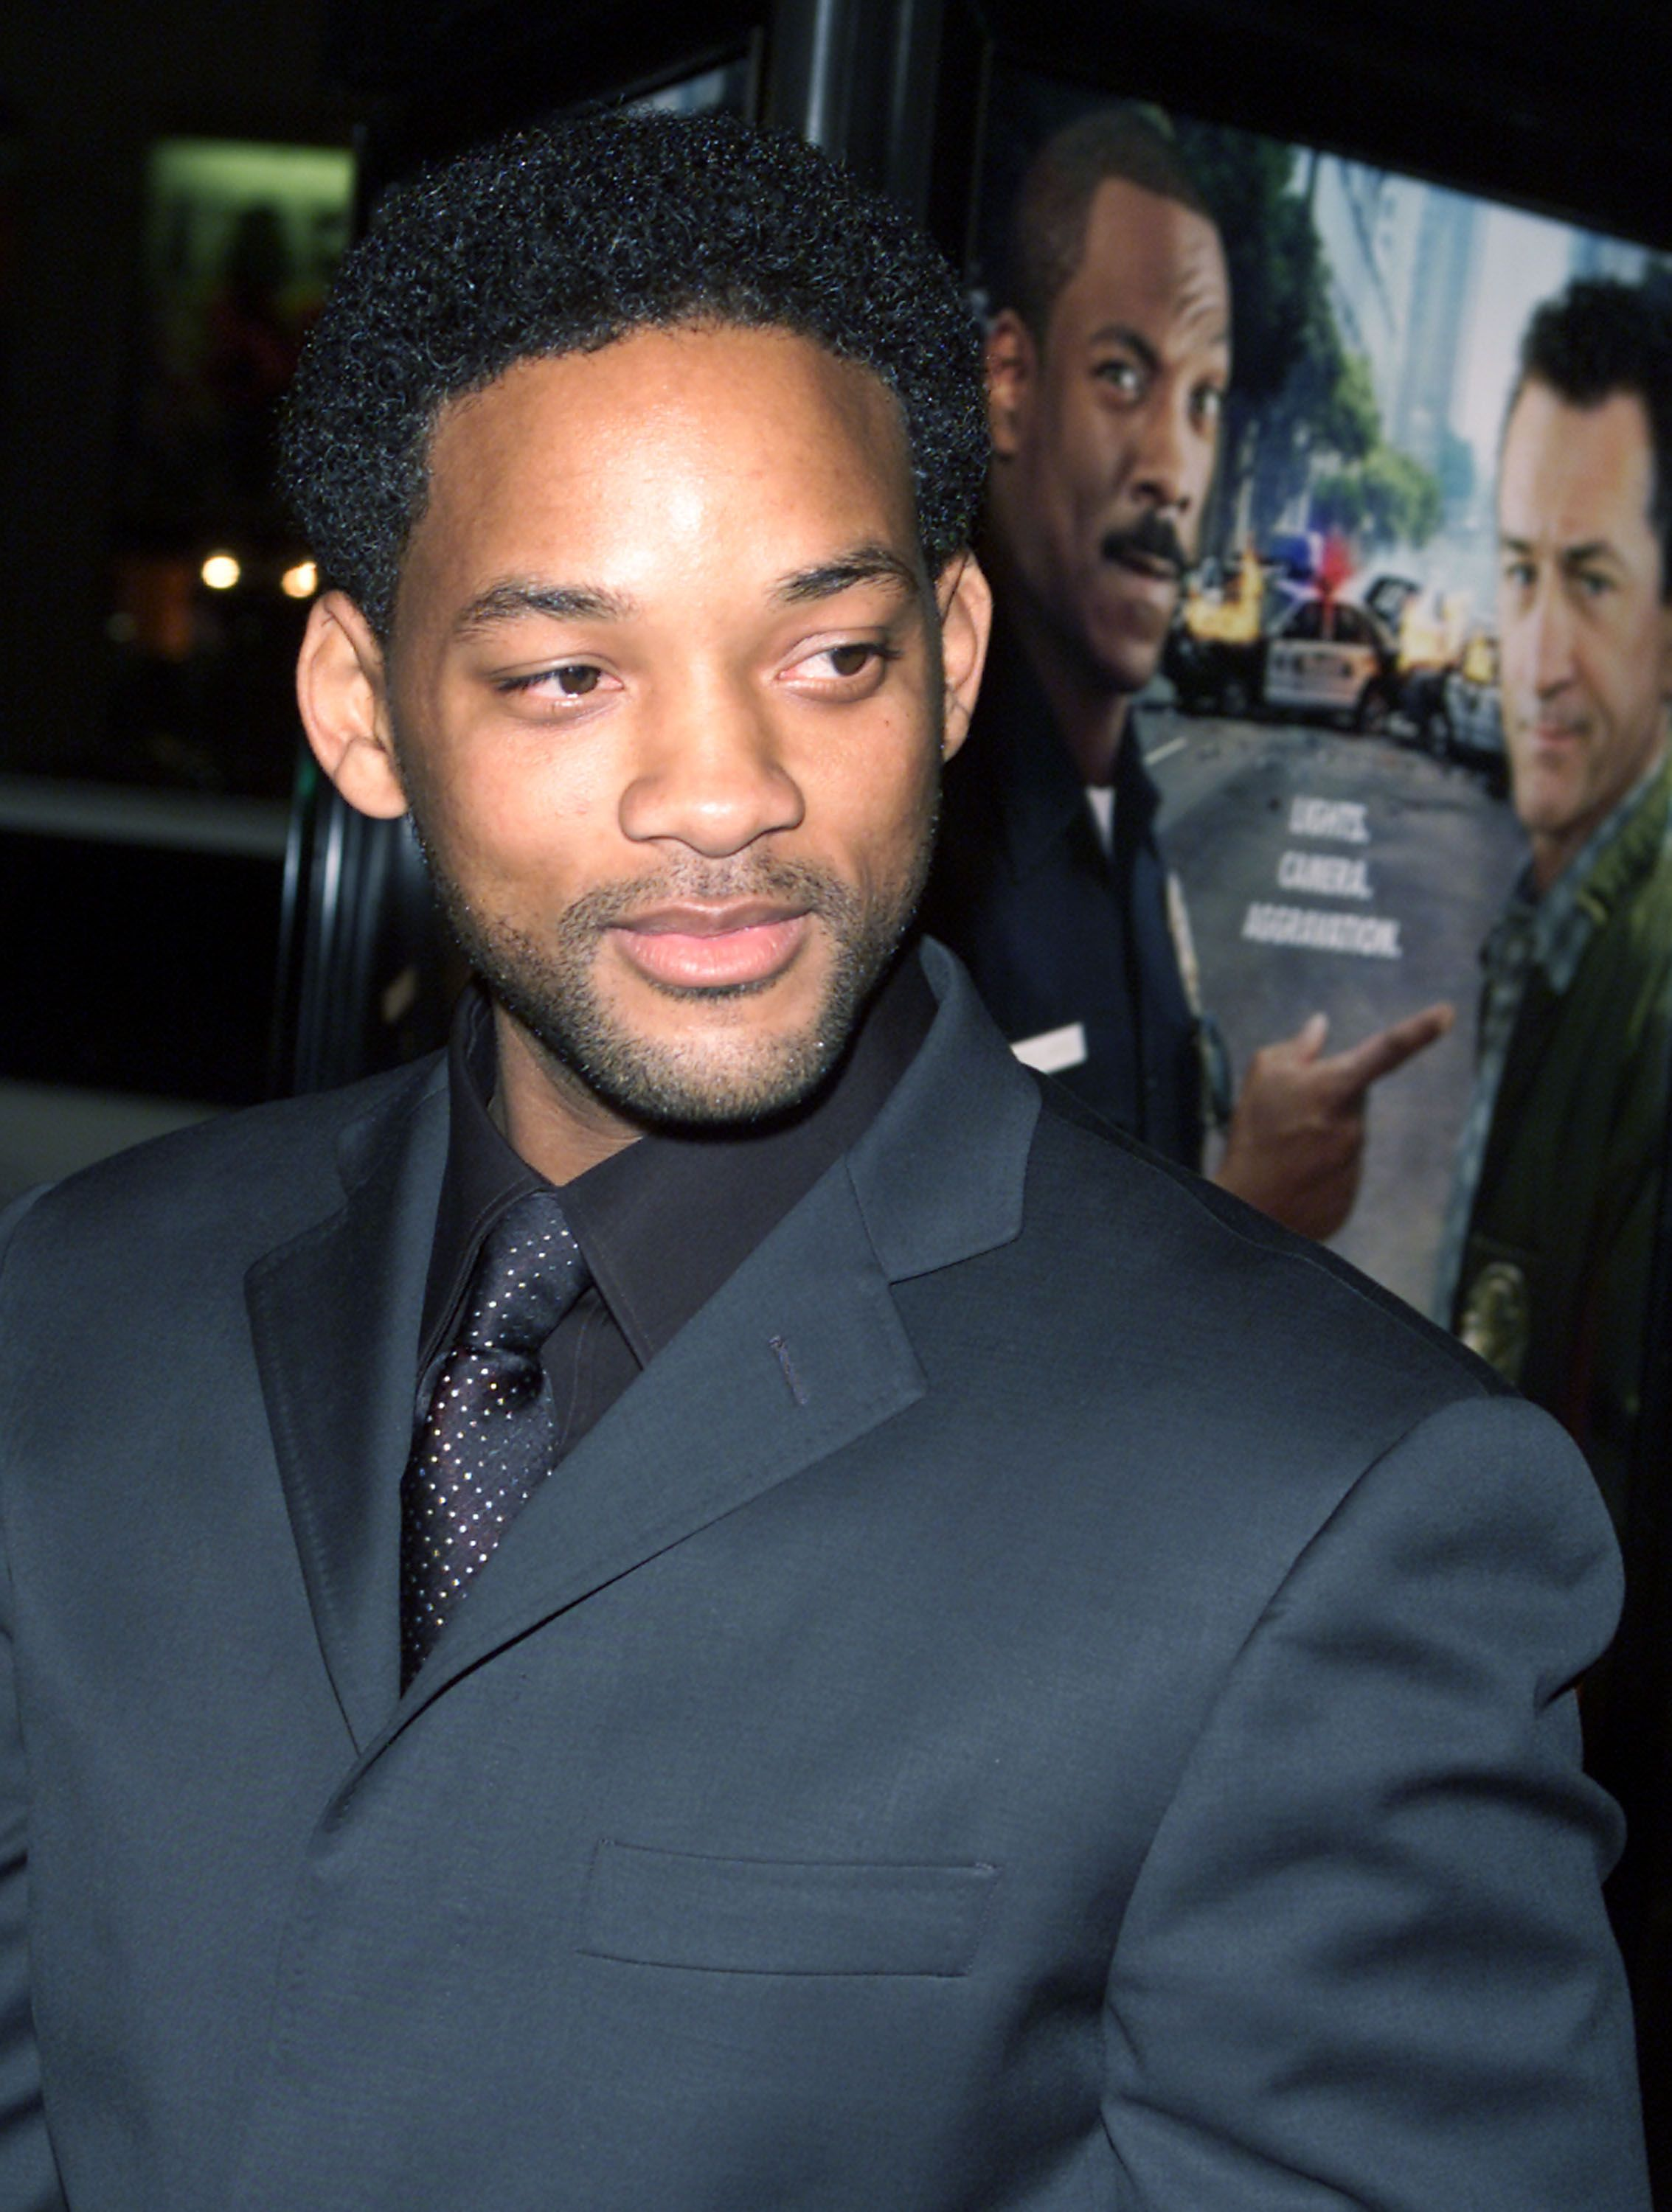 """Will Smith attending the premiere of """"Showtime"""" in L.A on Monday, March 11, 2002.   Photo: Getty Images"""